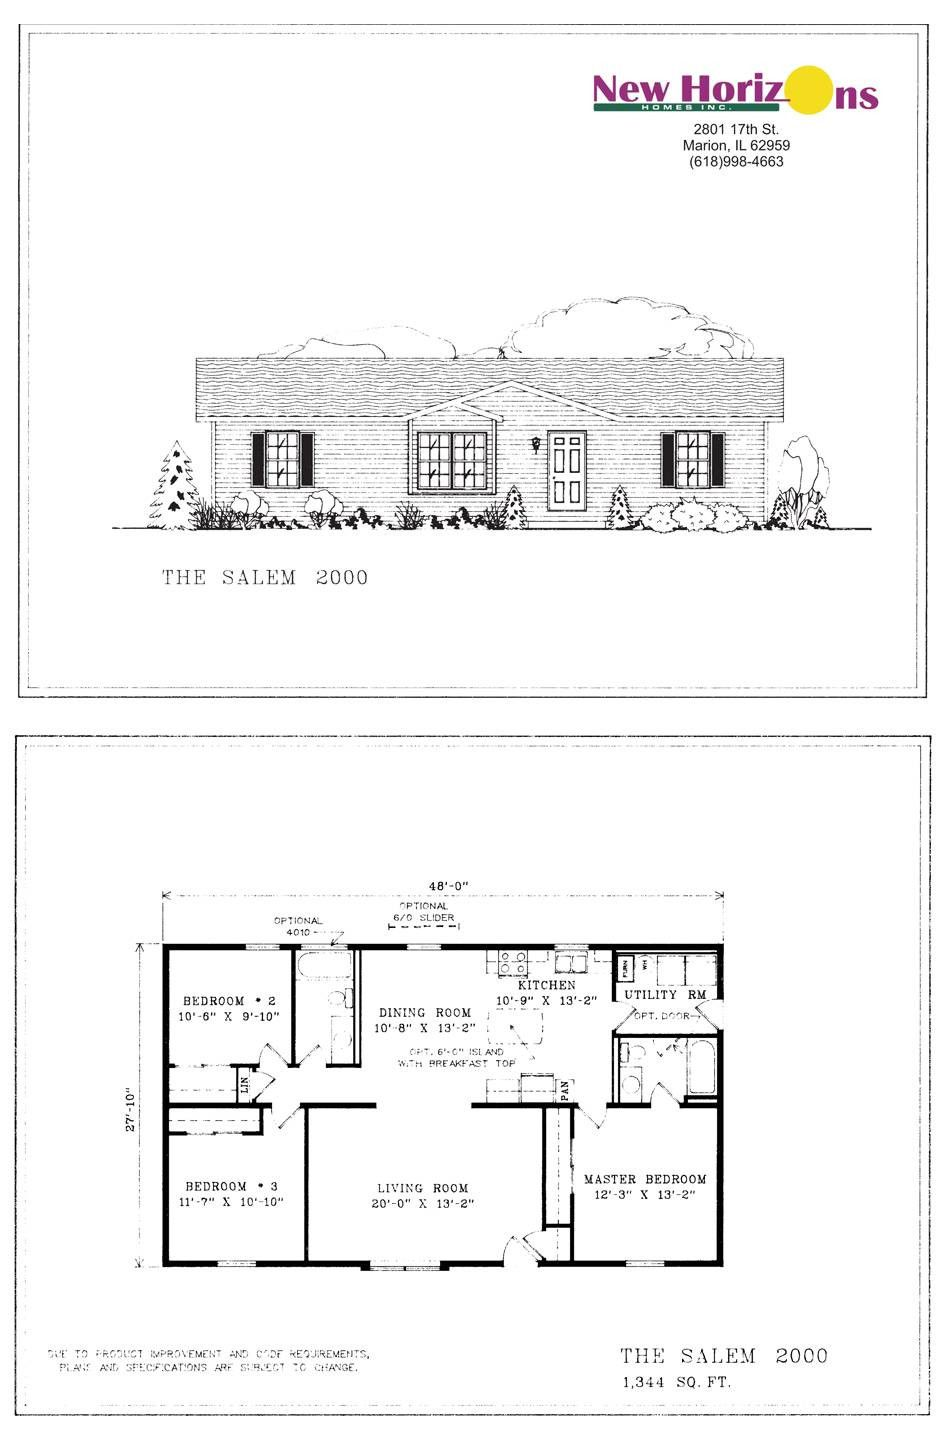 Fresh House Floor Plans One Level 2000 Sq Ft Beautiful 2000 Square Foot House Plans E Story 1 In 2020 House Plans One Story Basement House Plans Square House Plans